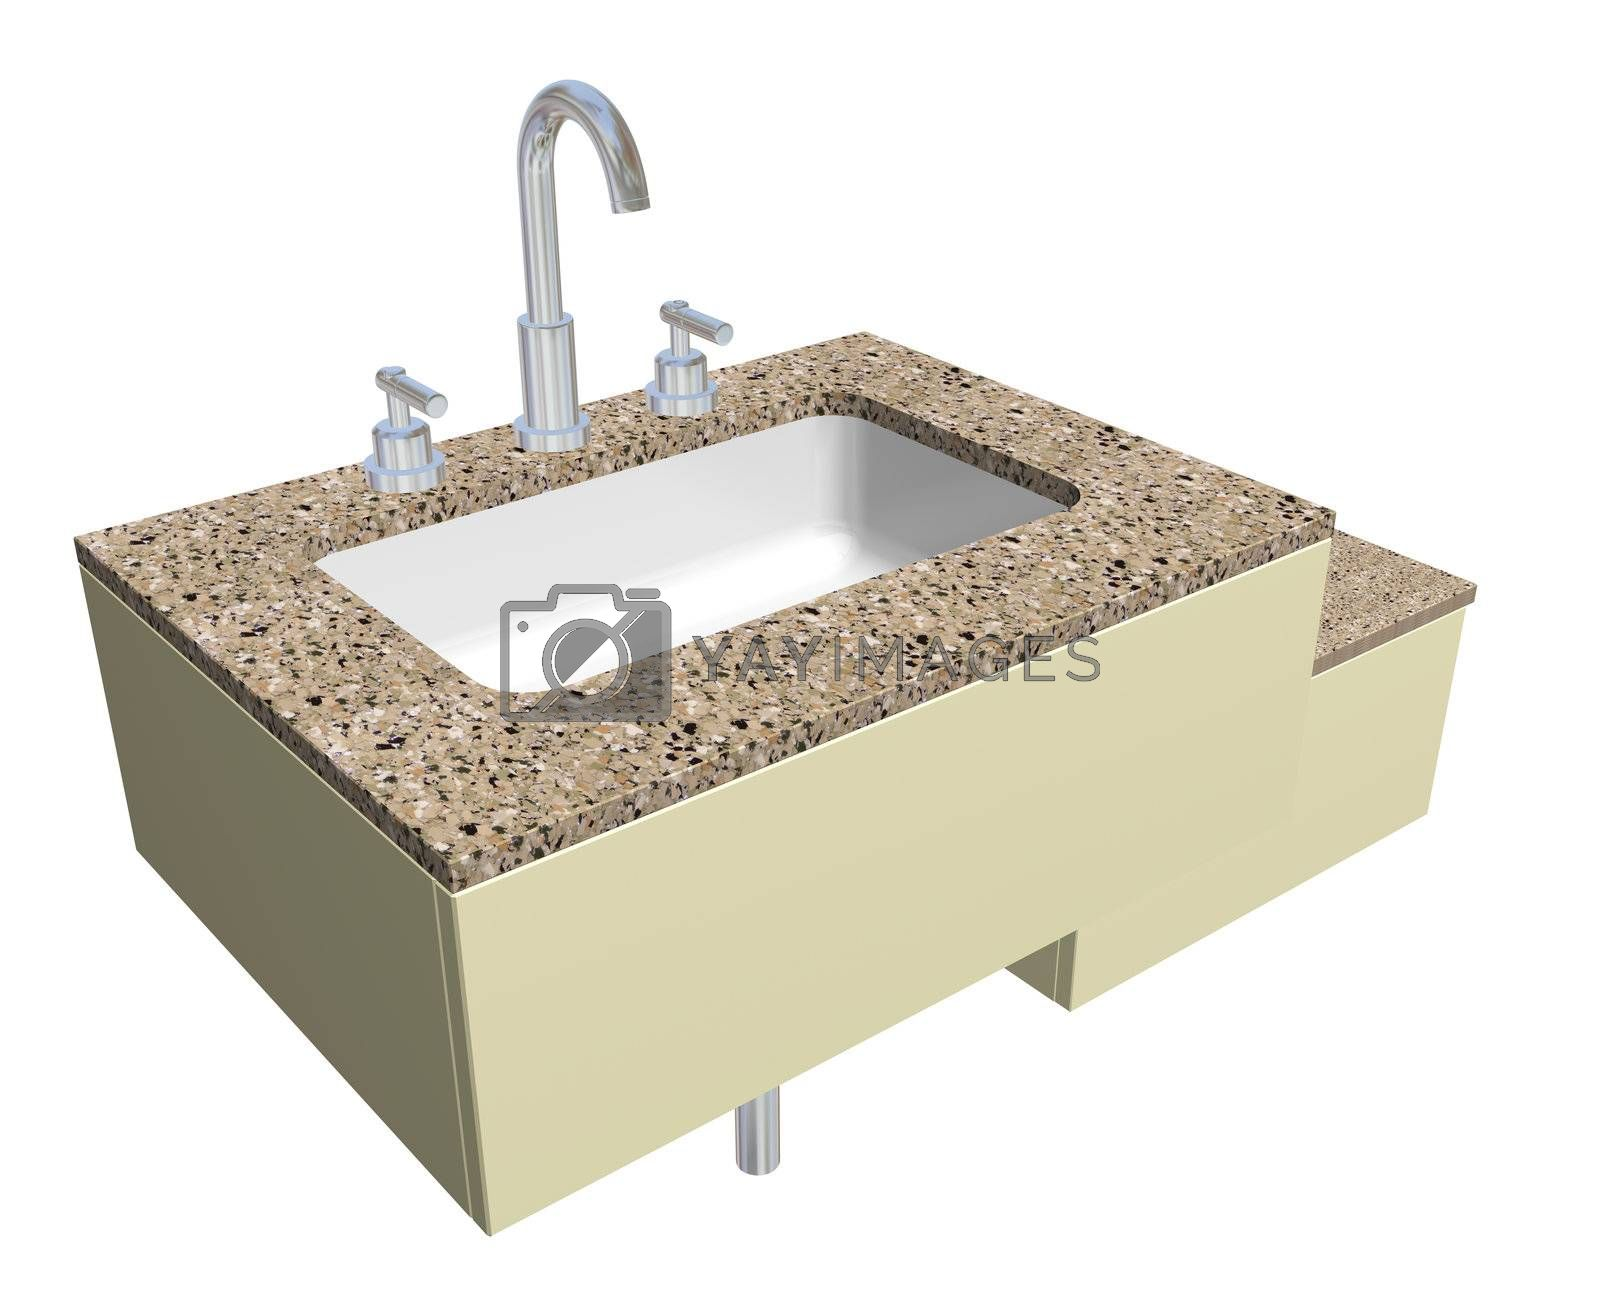 White built-in square bathroom sink with chrome faucet and plumbing fixtures, with a granite countertop, isolated against a white background.